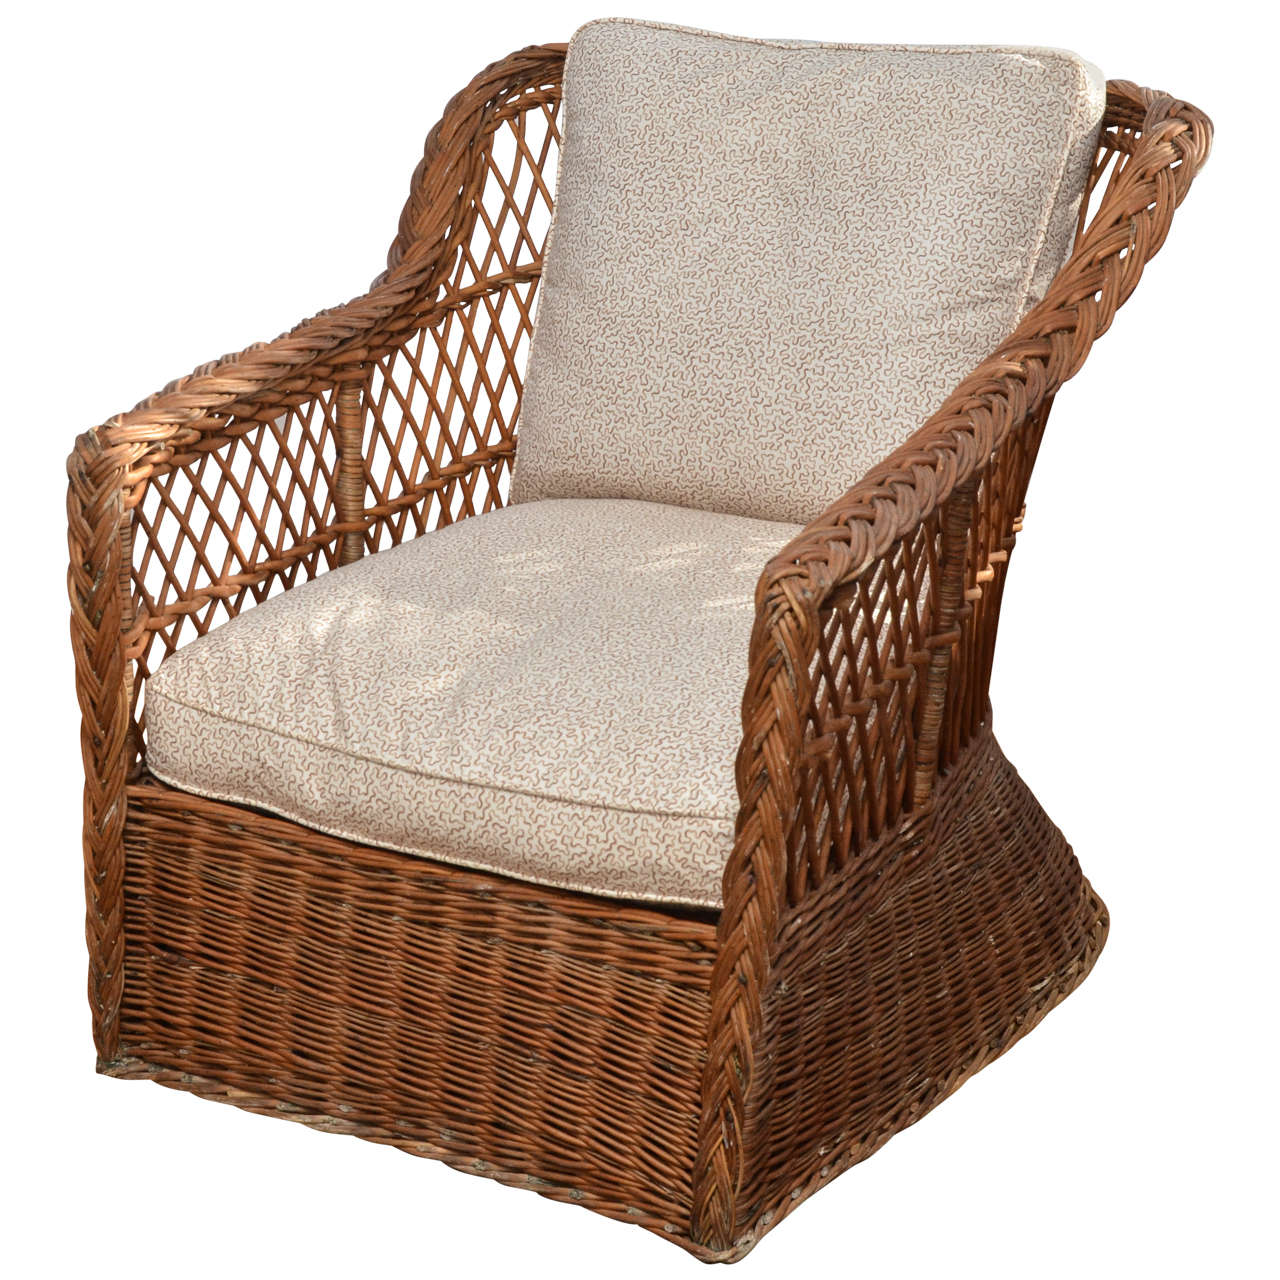 large lounge chair flex steel chairs scale american 1920 39s natural wicker at